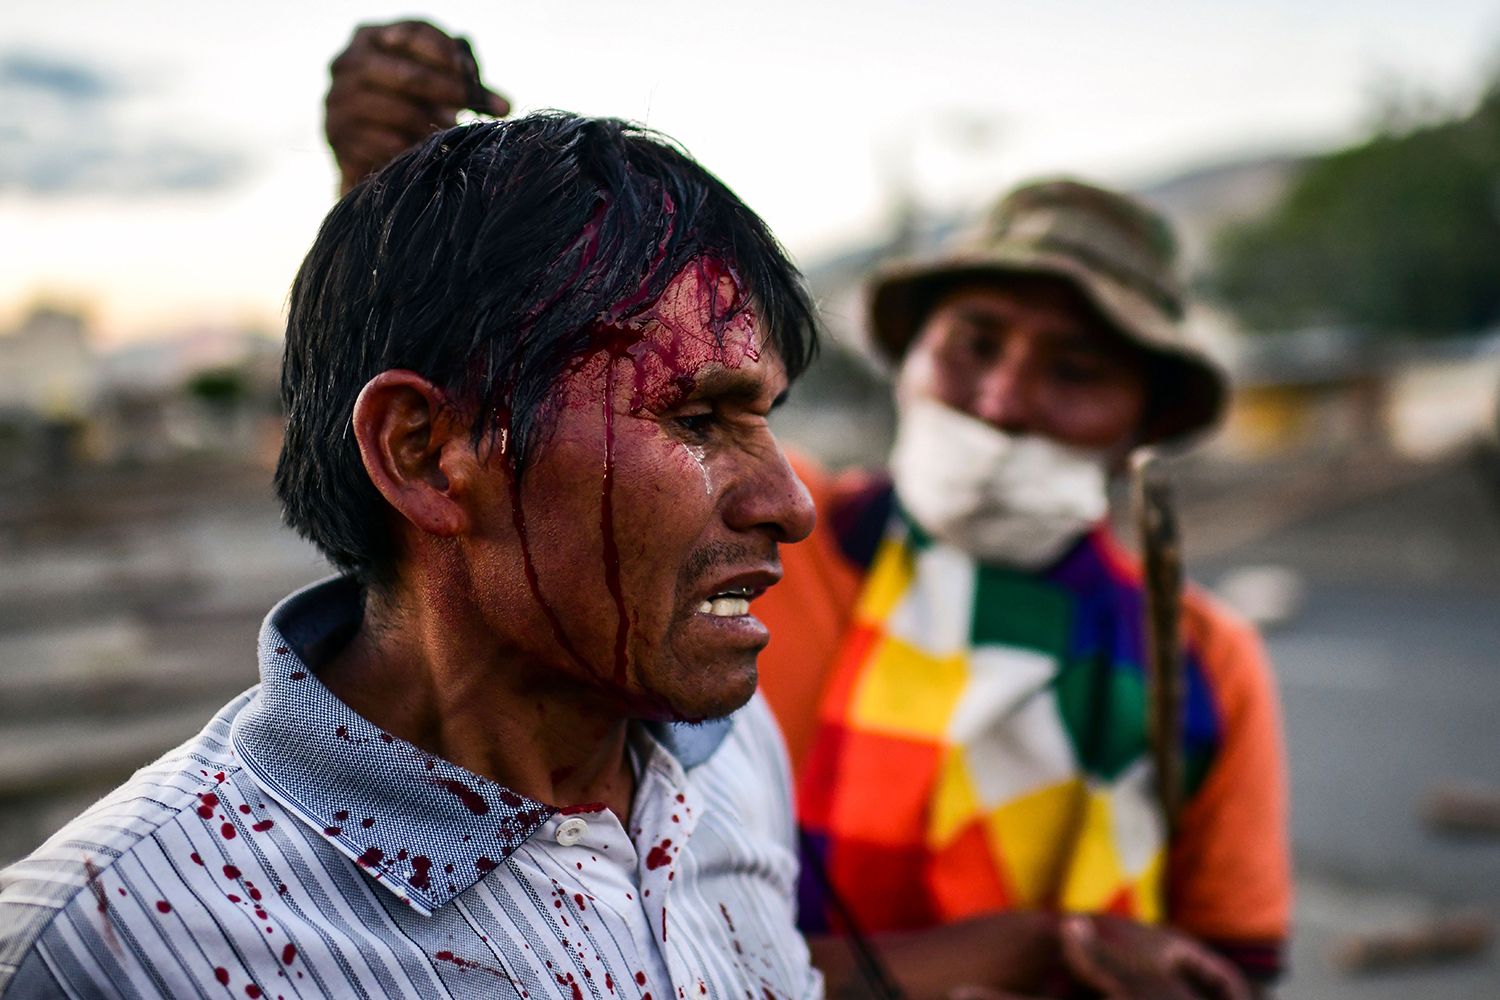 A supporter of Morales gestures after being injured during clashes with riot police near Cochabamba on Nov. 18. RONALDO SCHEMIDT/AFP via Getty Images